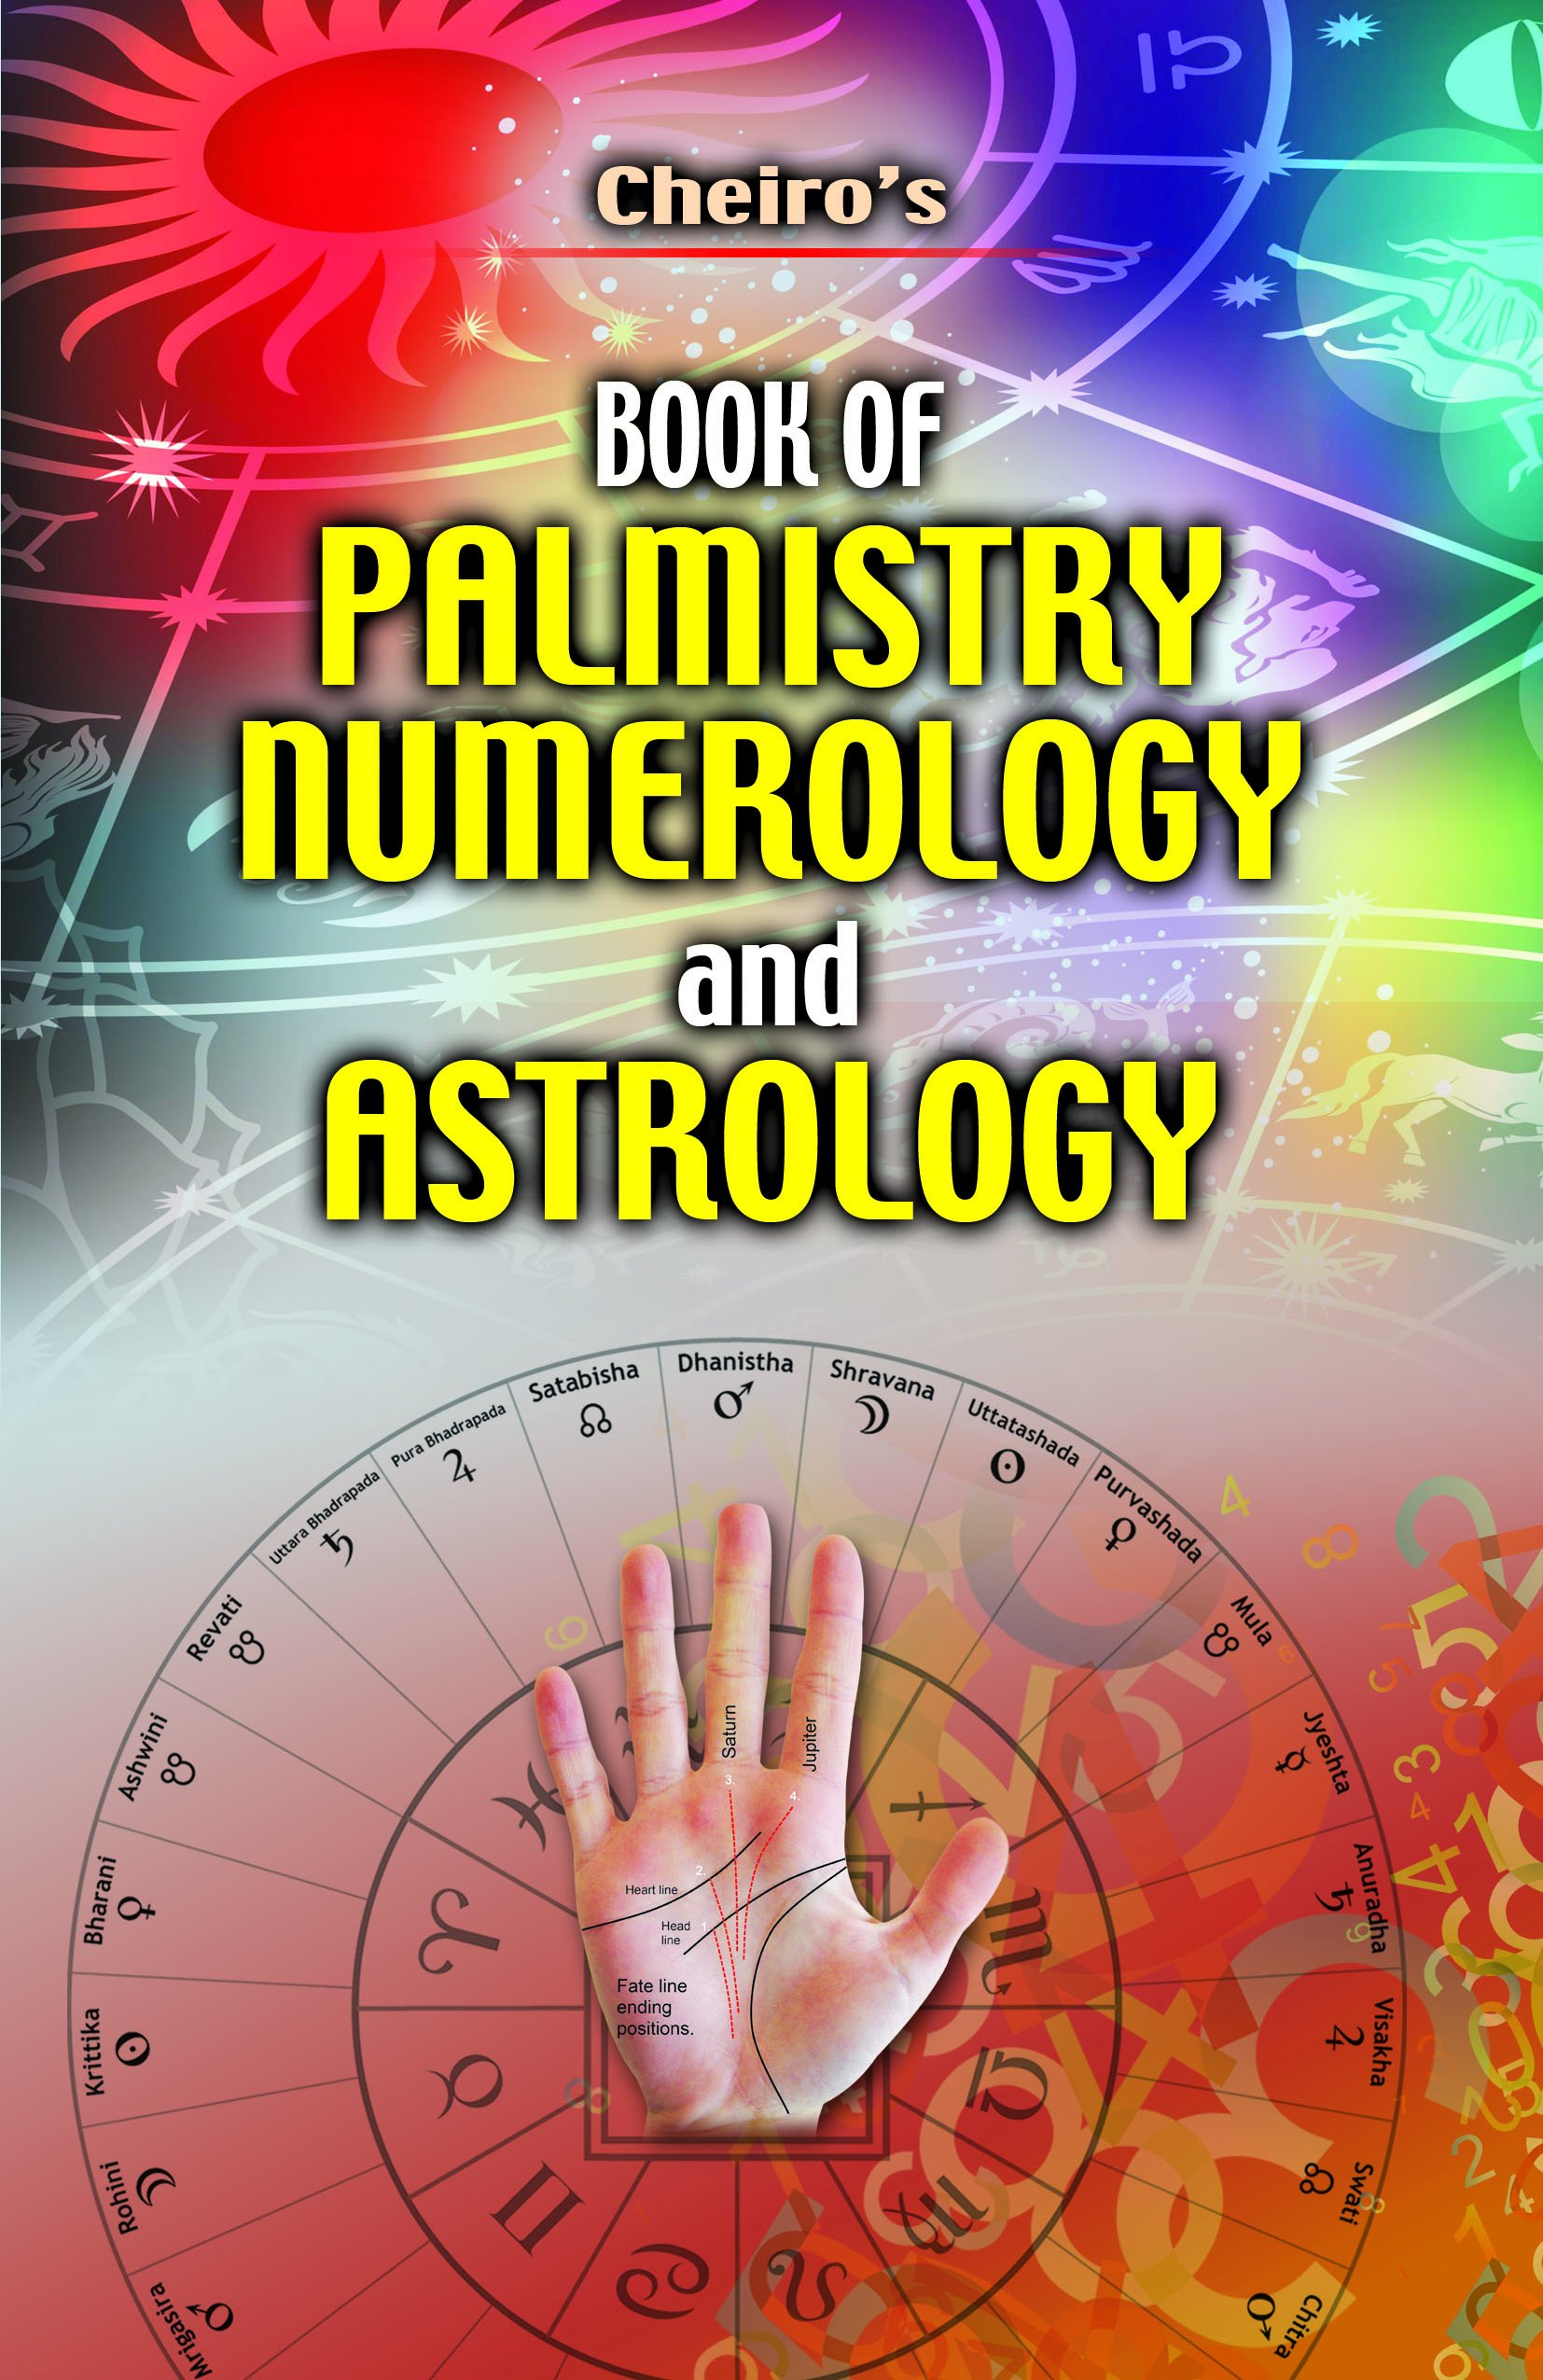 Download numerology book in hindi pdf free hindi ebooks.